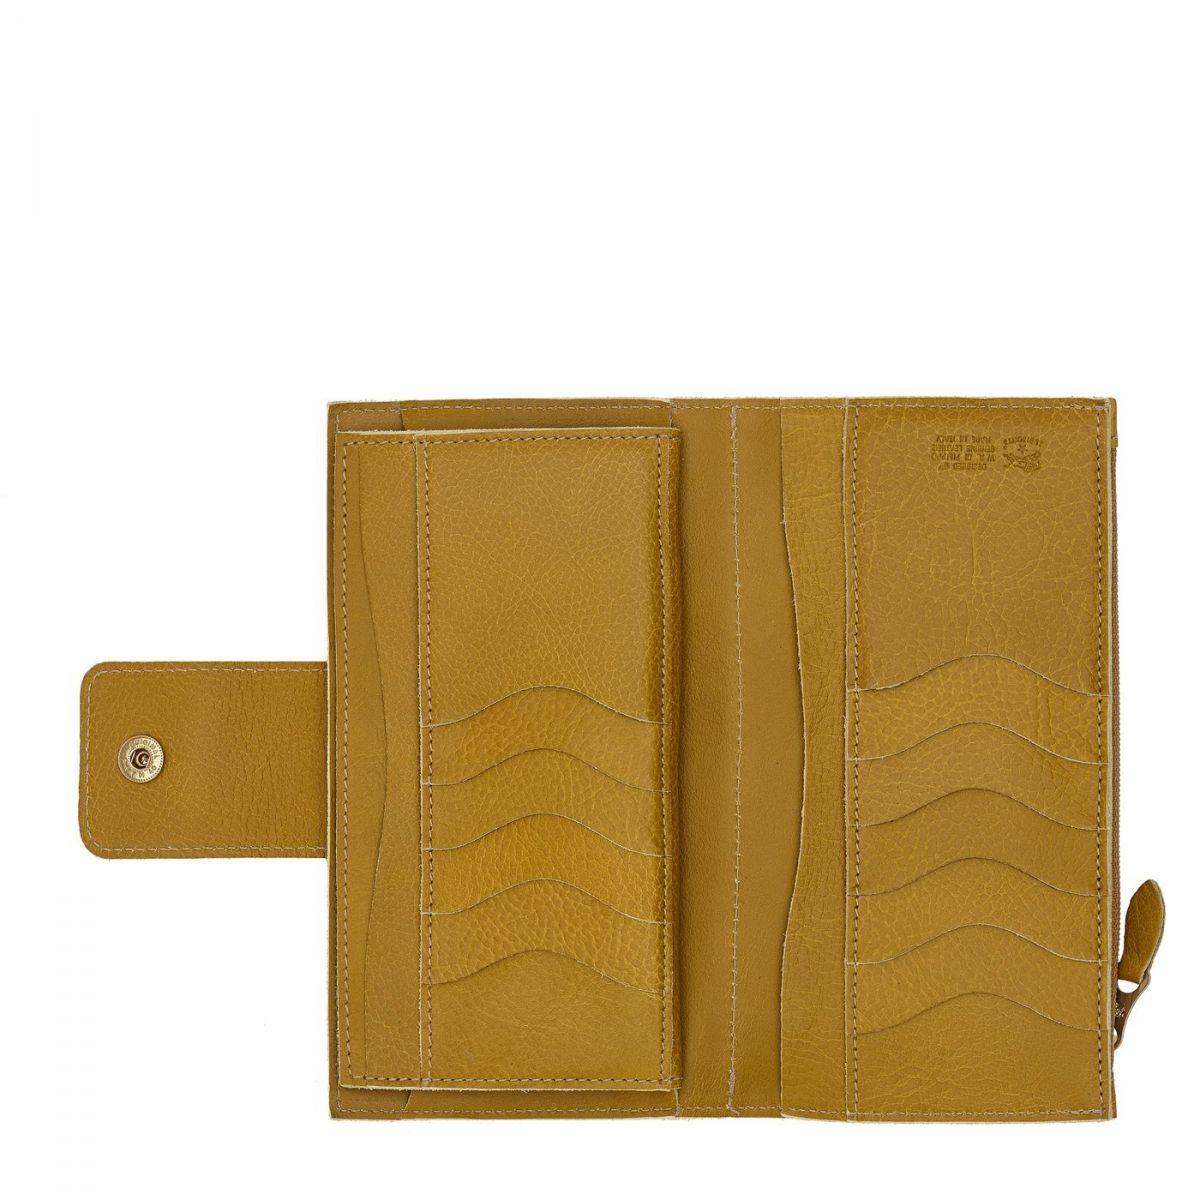 Women's Continental Wallet  in Cowhide Leather SCW007 color Curry | Details